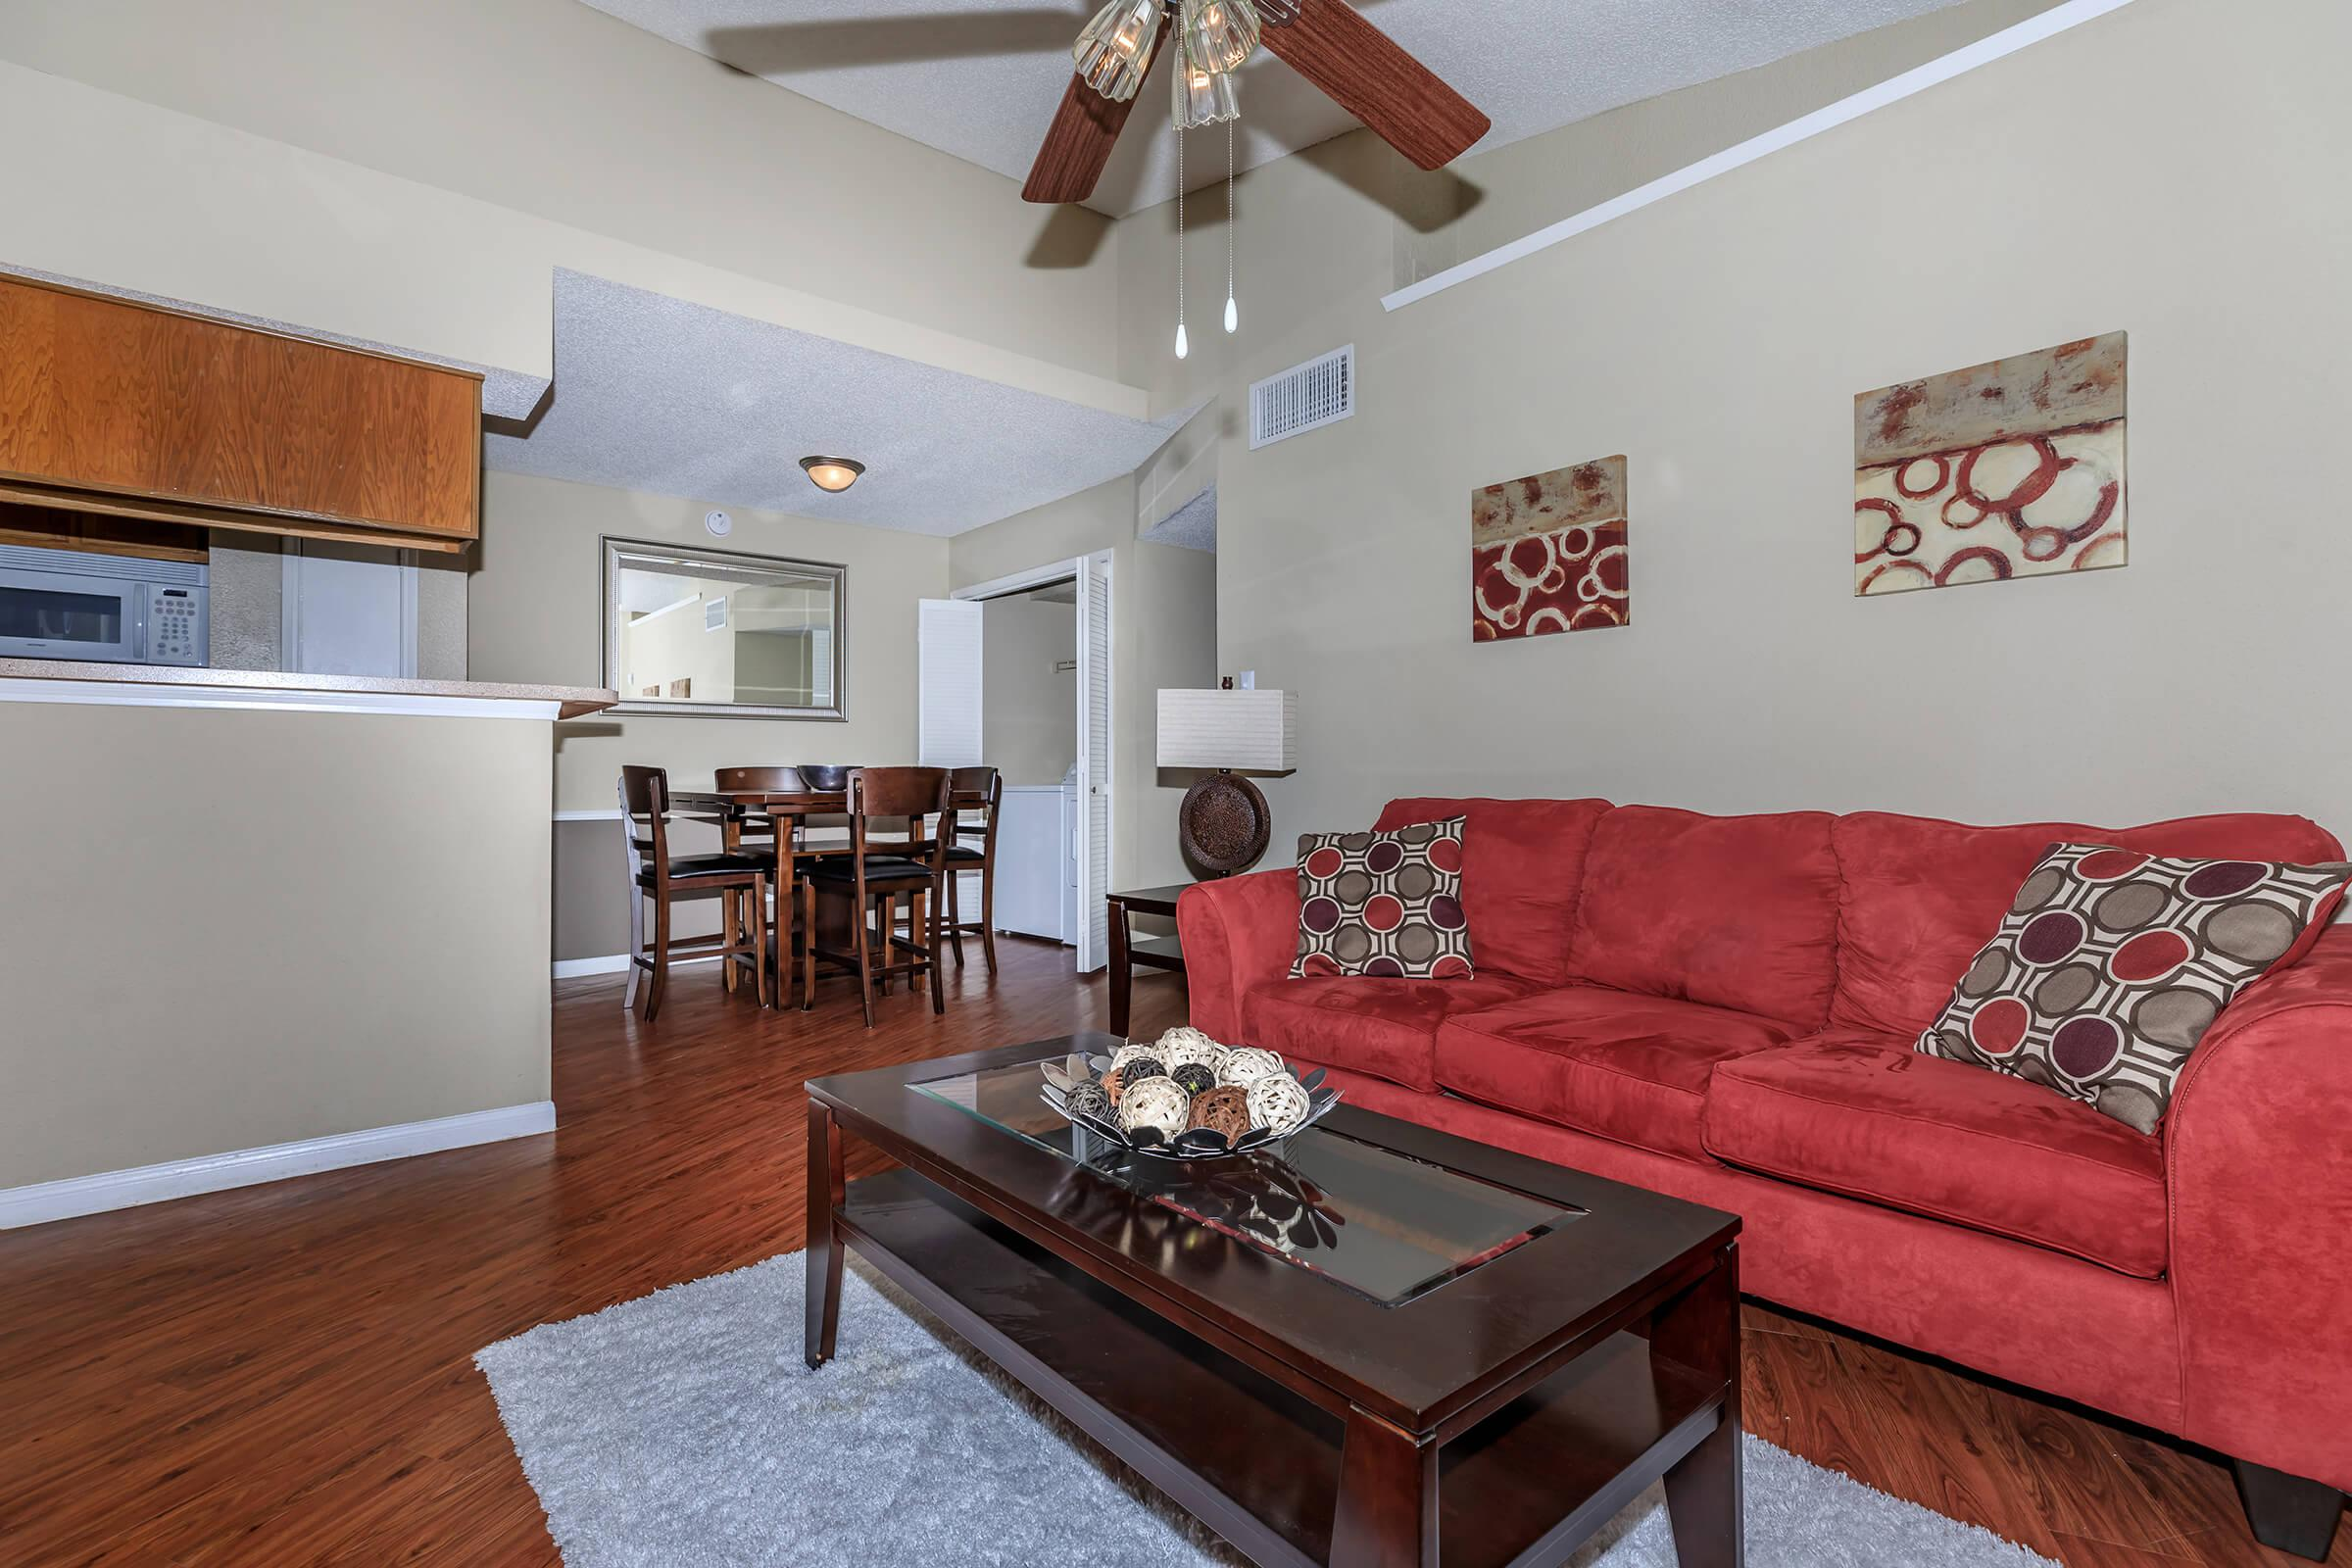 a living room with red floor